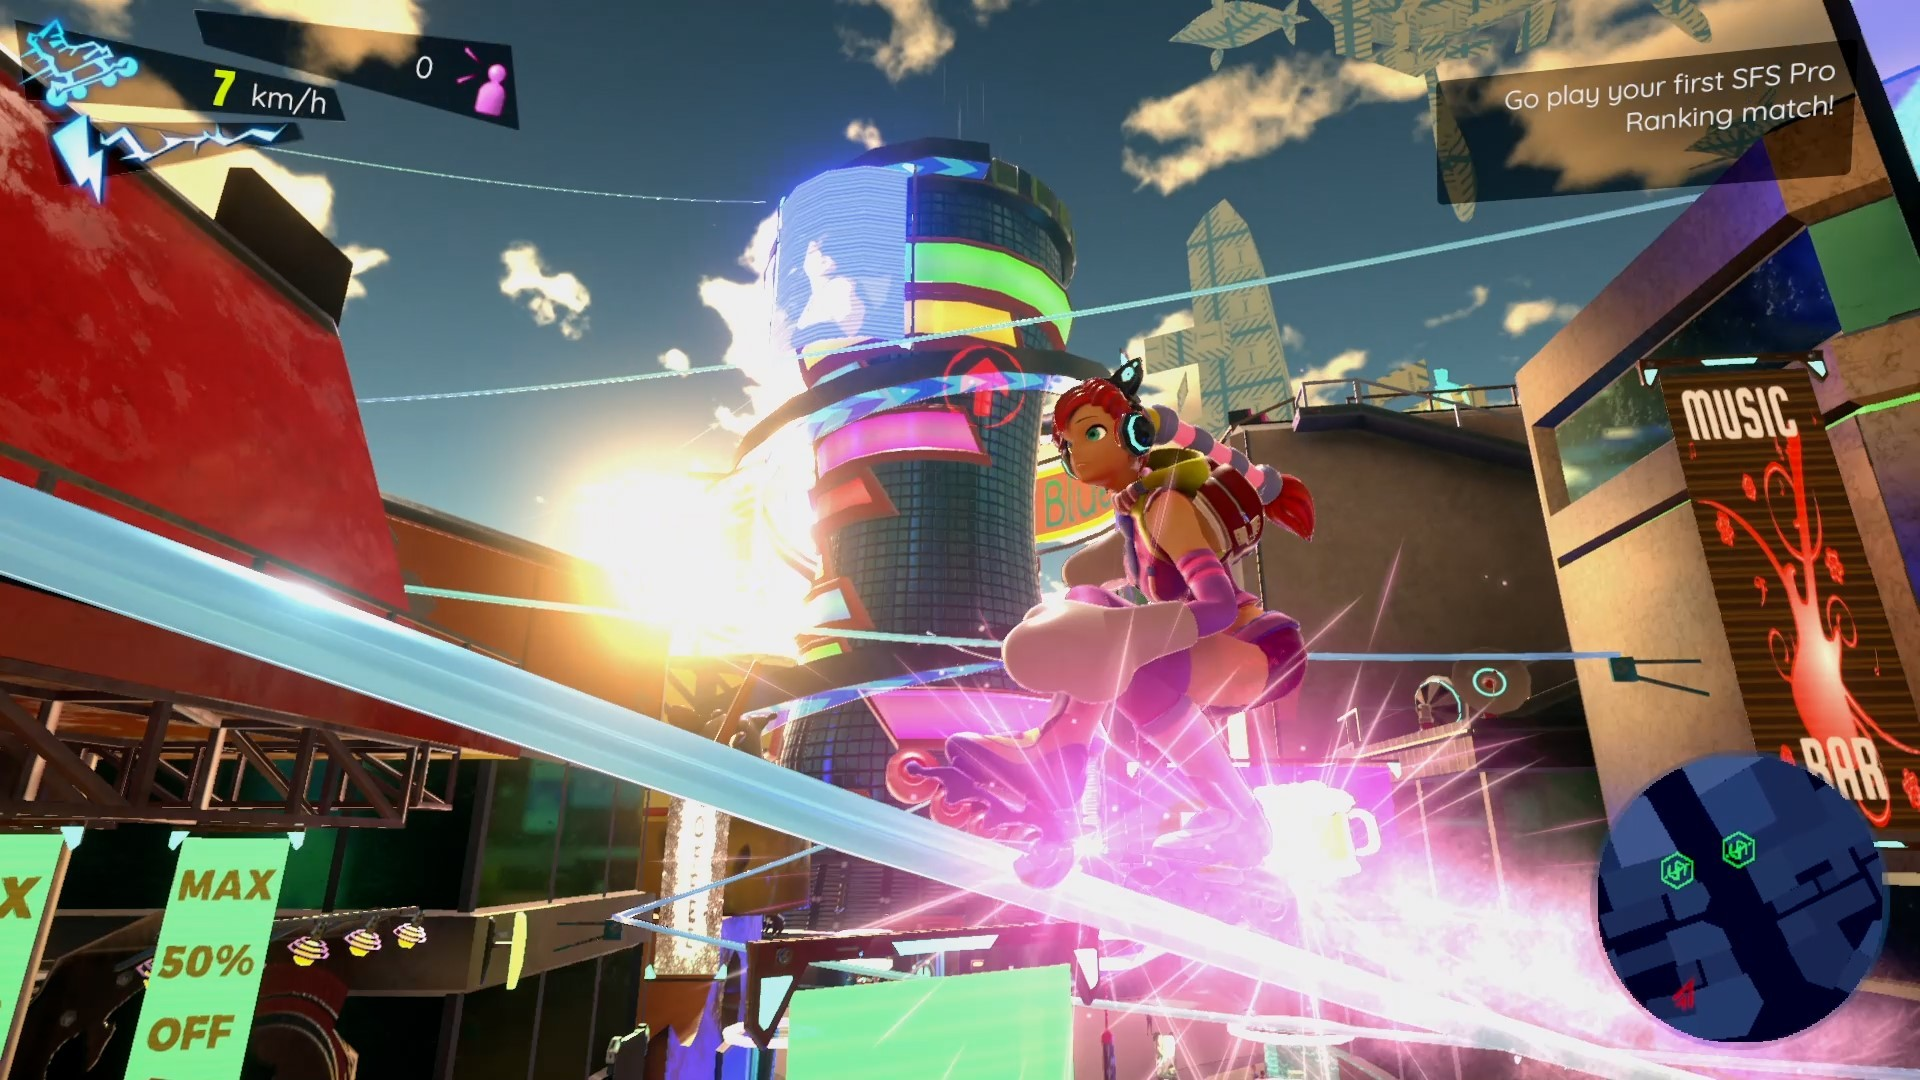 A screenshot of a player character in Neon Tail, grinding along a set of rails. They are wearing cat ear headphones